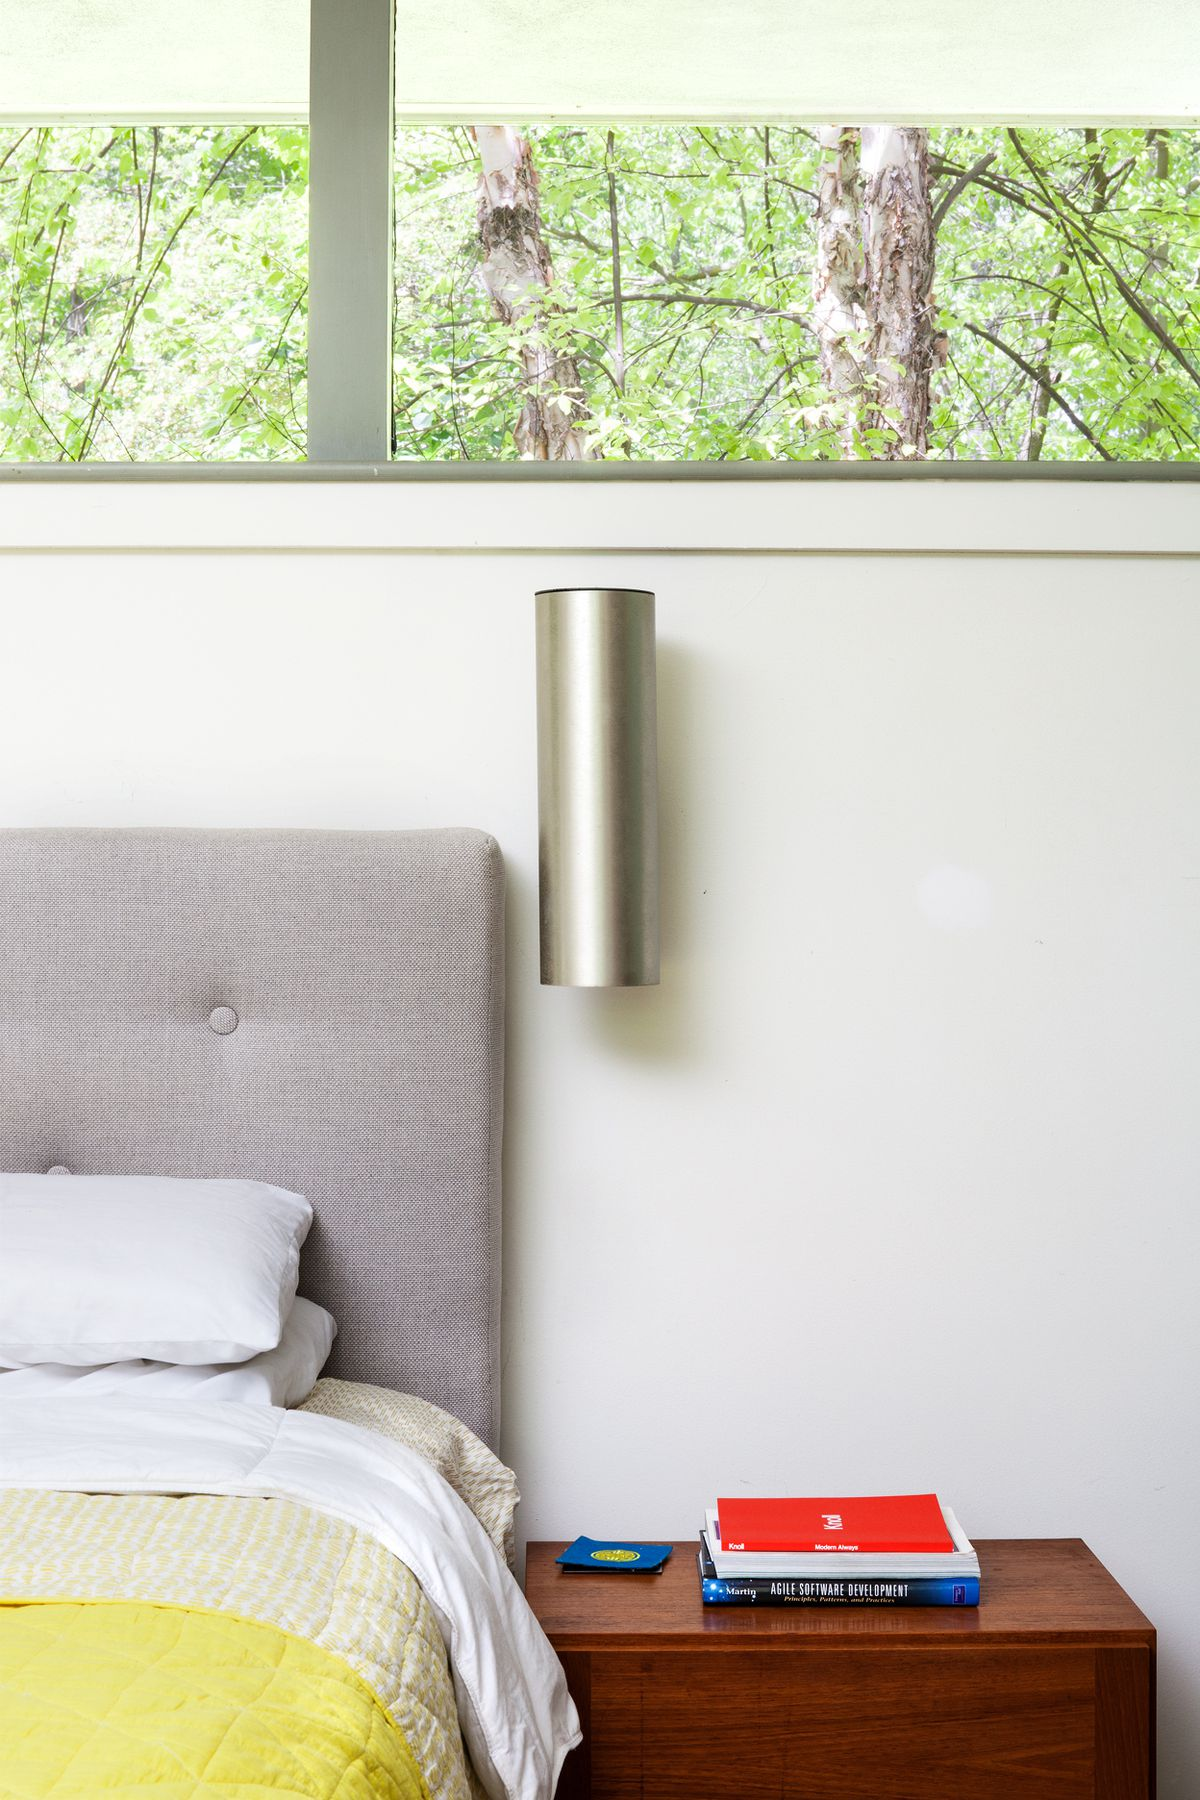 In the master bedroom, the men installed an aluminum cylinder sconce and a gray-upholstered headboard.